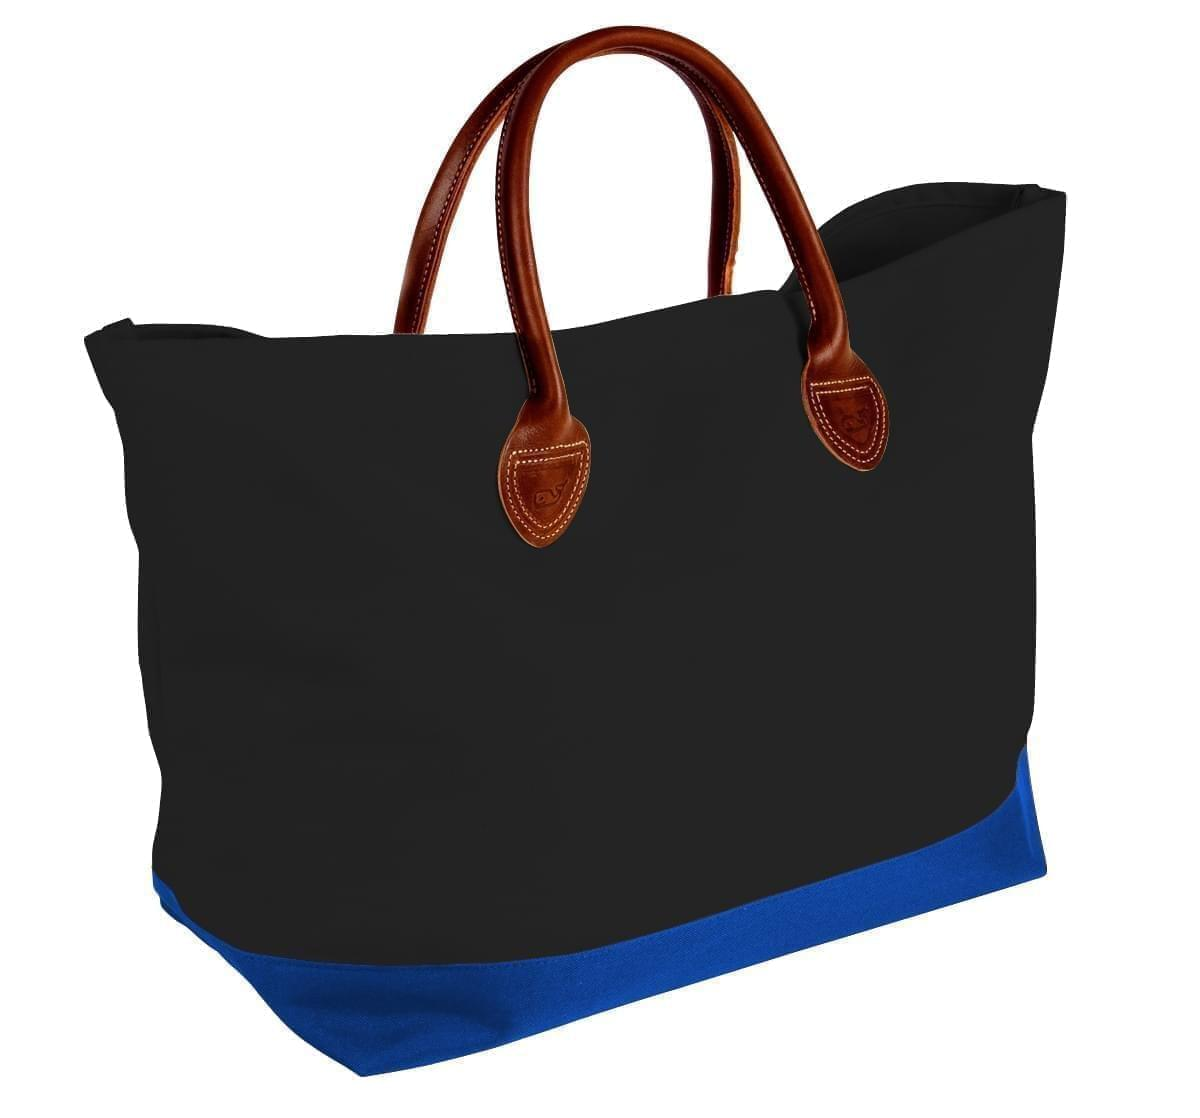 USA Made Canvas Leather Handle Totes, Black-Royal Blue, 10899-MH9